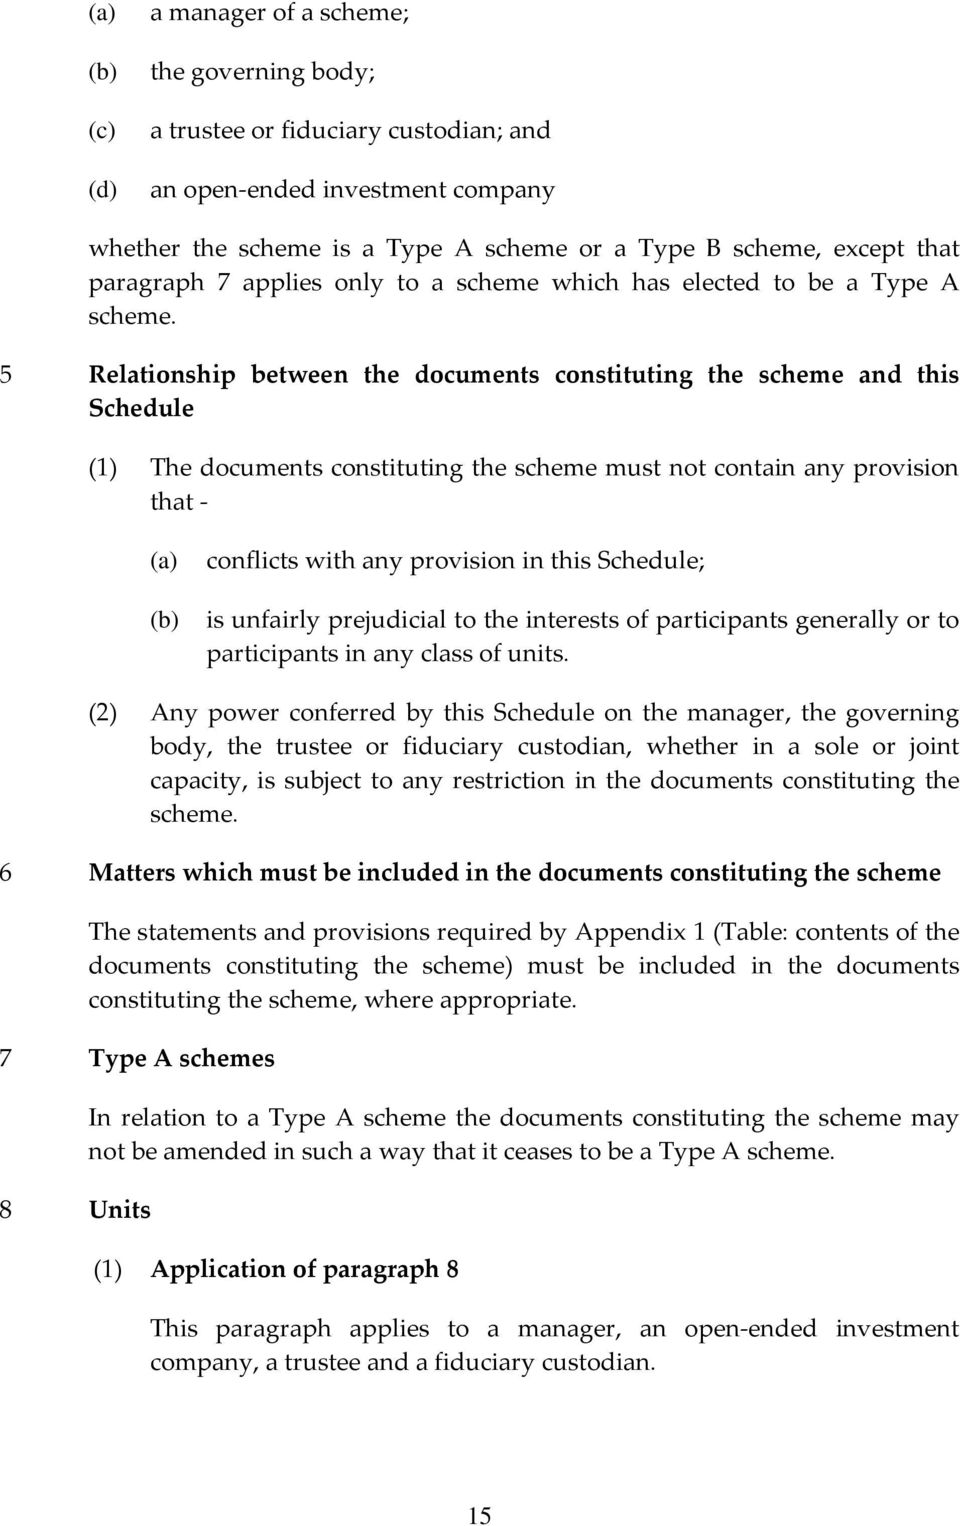 5 Relationship between the documents constituting the scheme and this Schedule (1) The documents constituting the scheme must not contain any provision that - conflicts with any provision in this